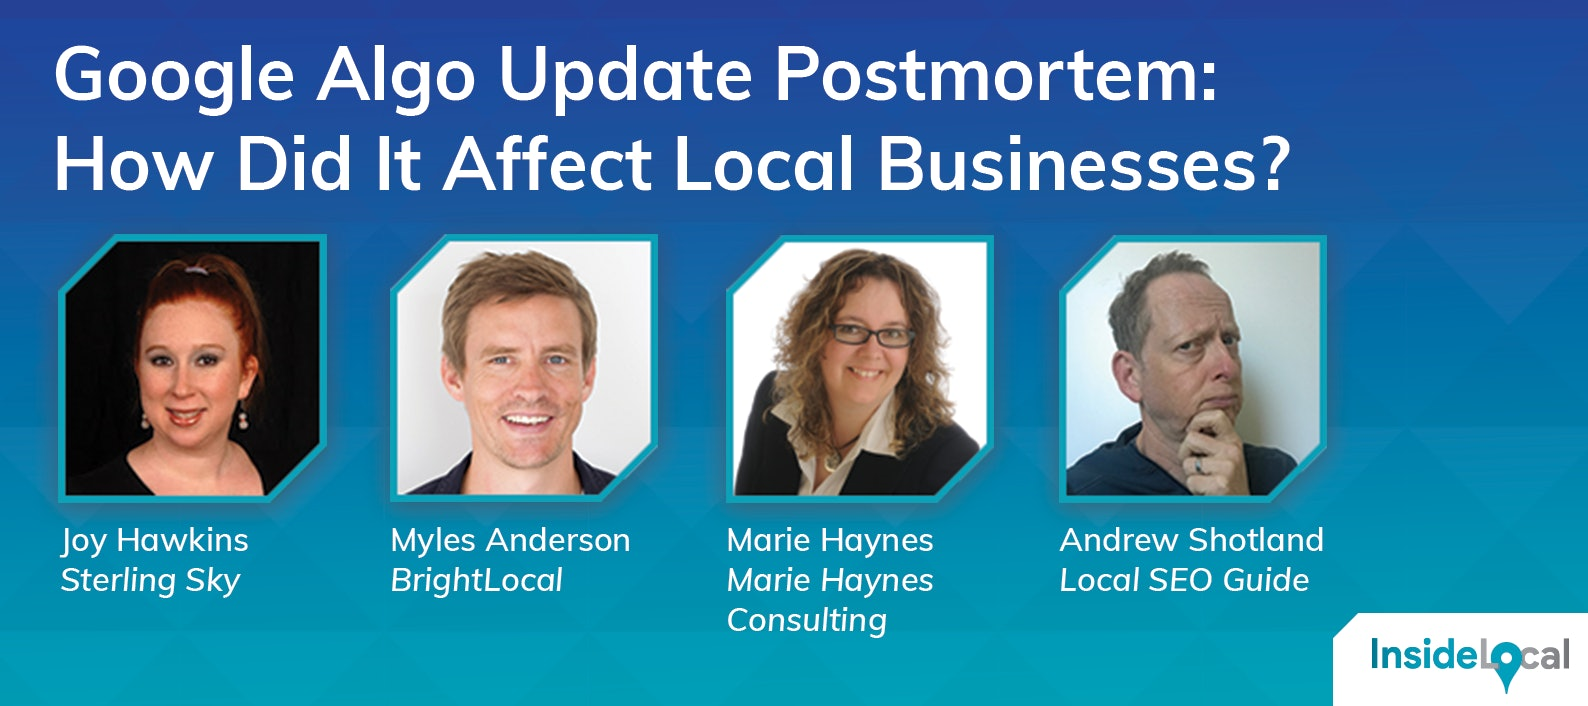 Google Algo Update Postmortem: How Did It Affect Local Businesses?